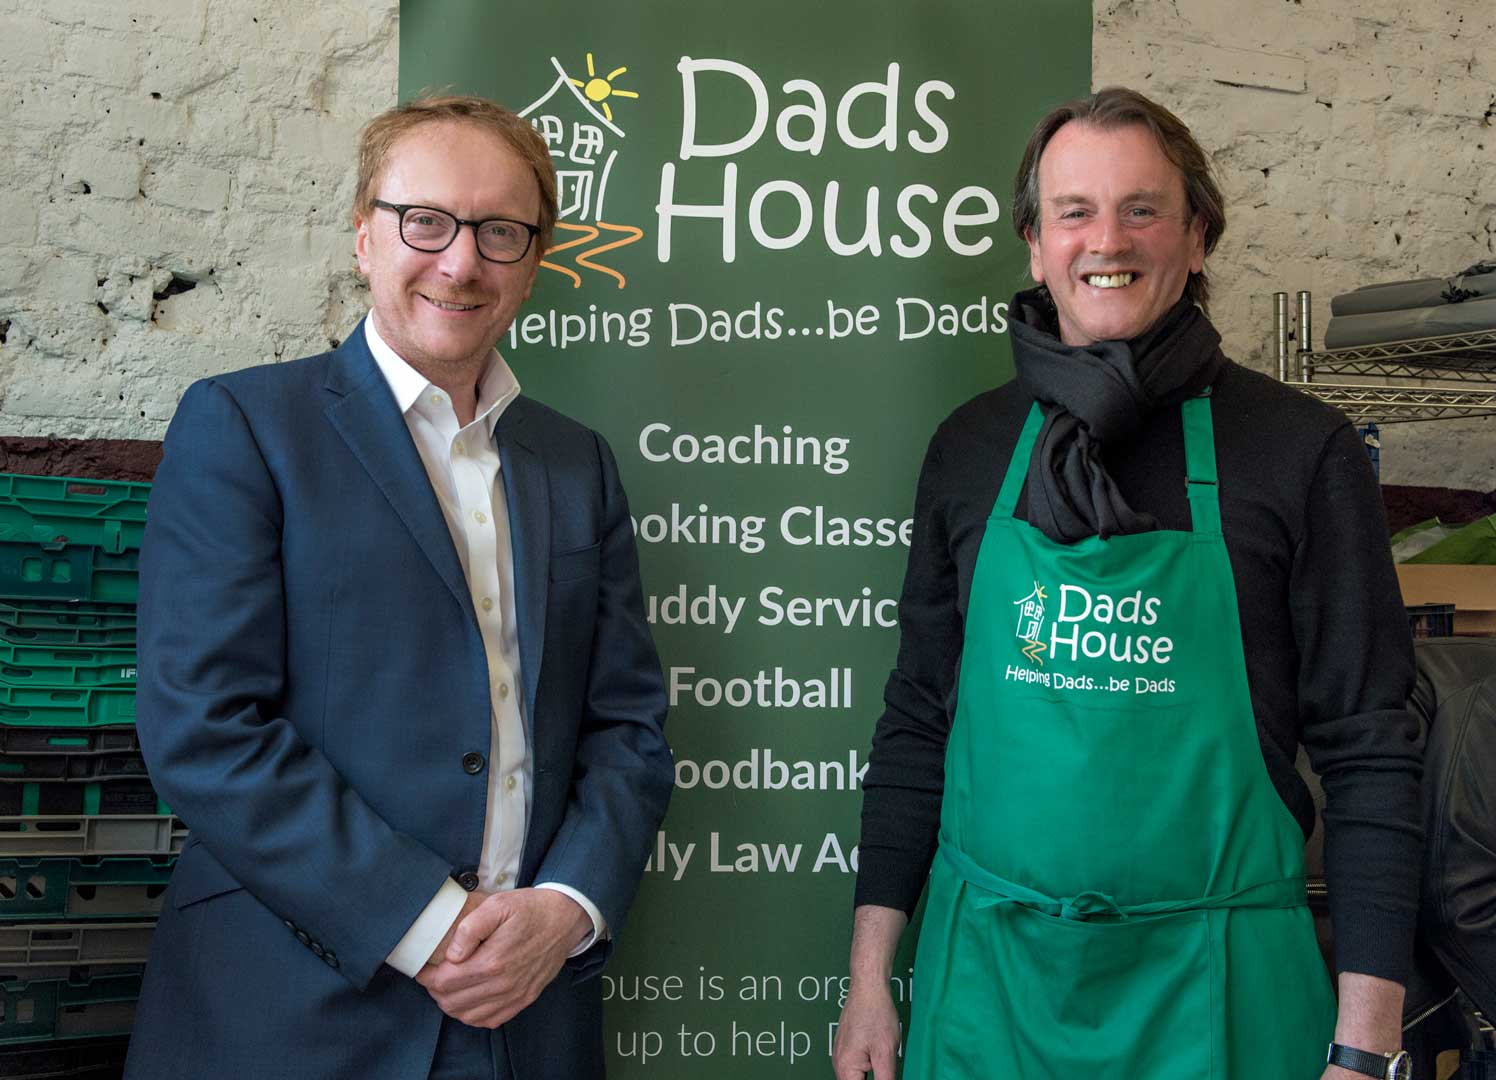 Family Support: Dads House – Single-Minded Support